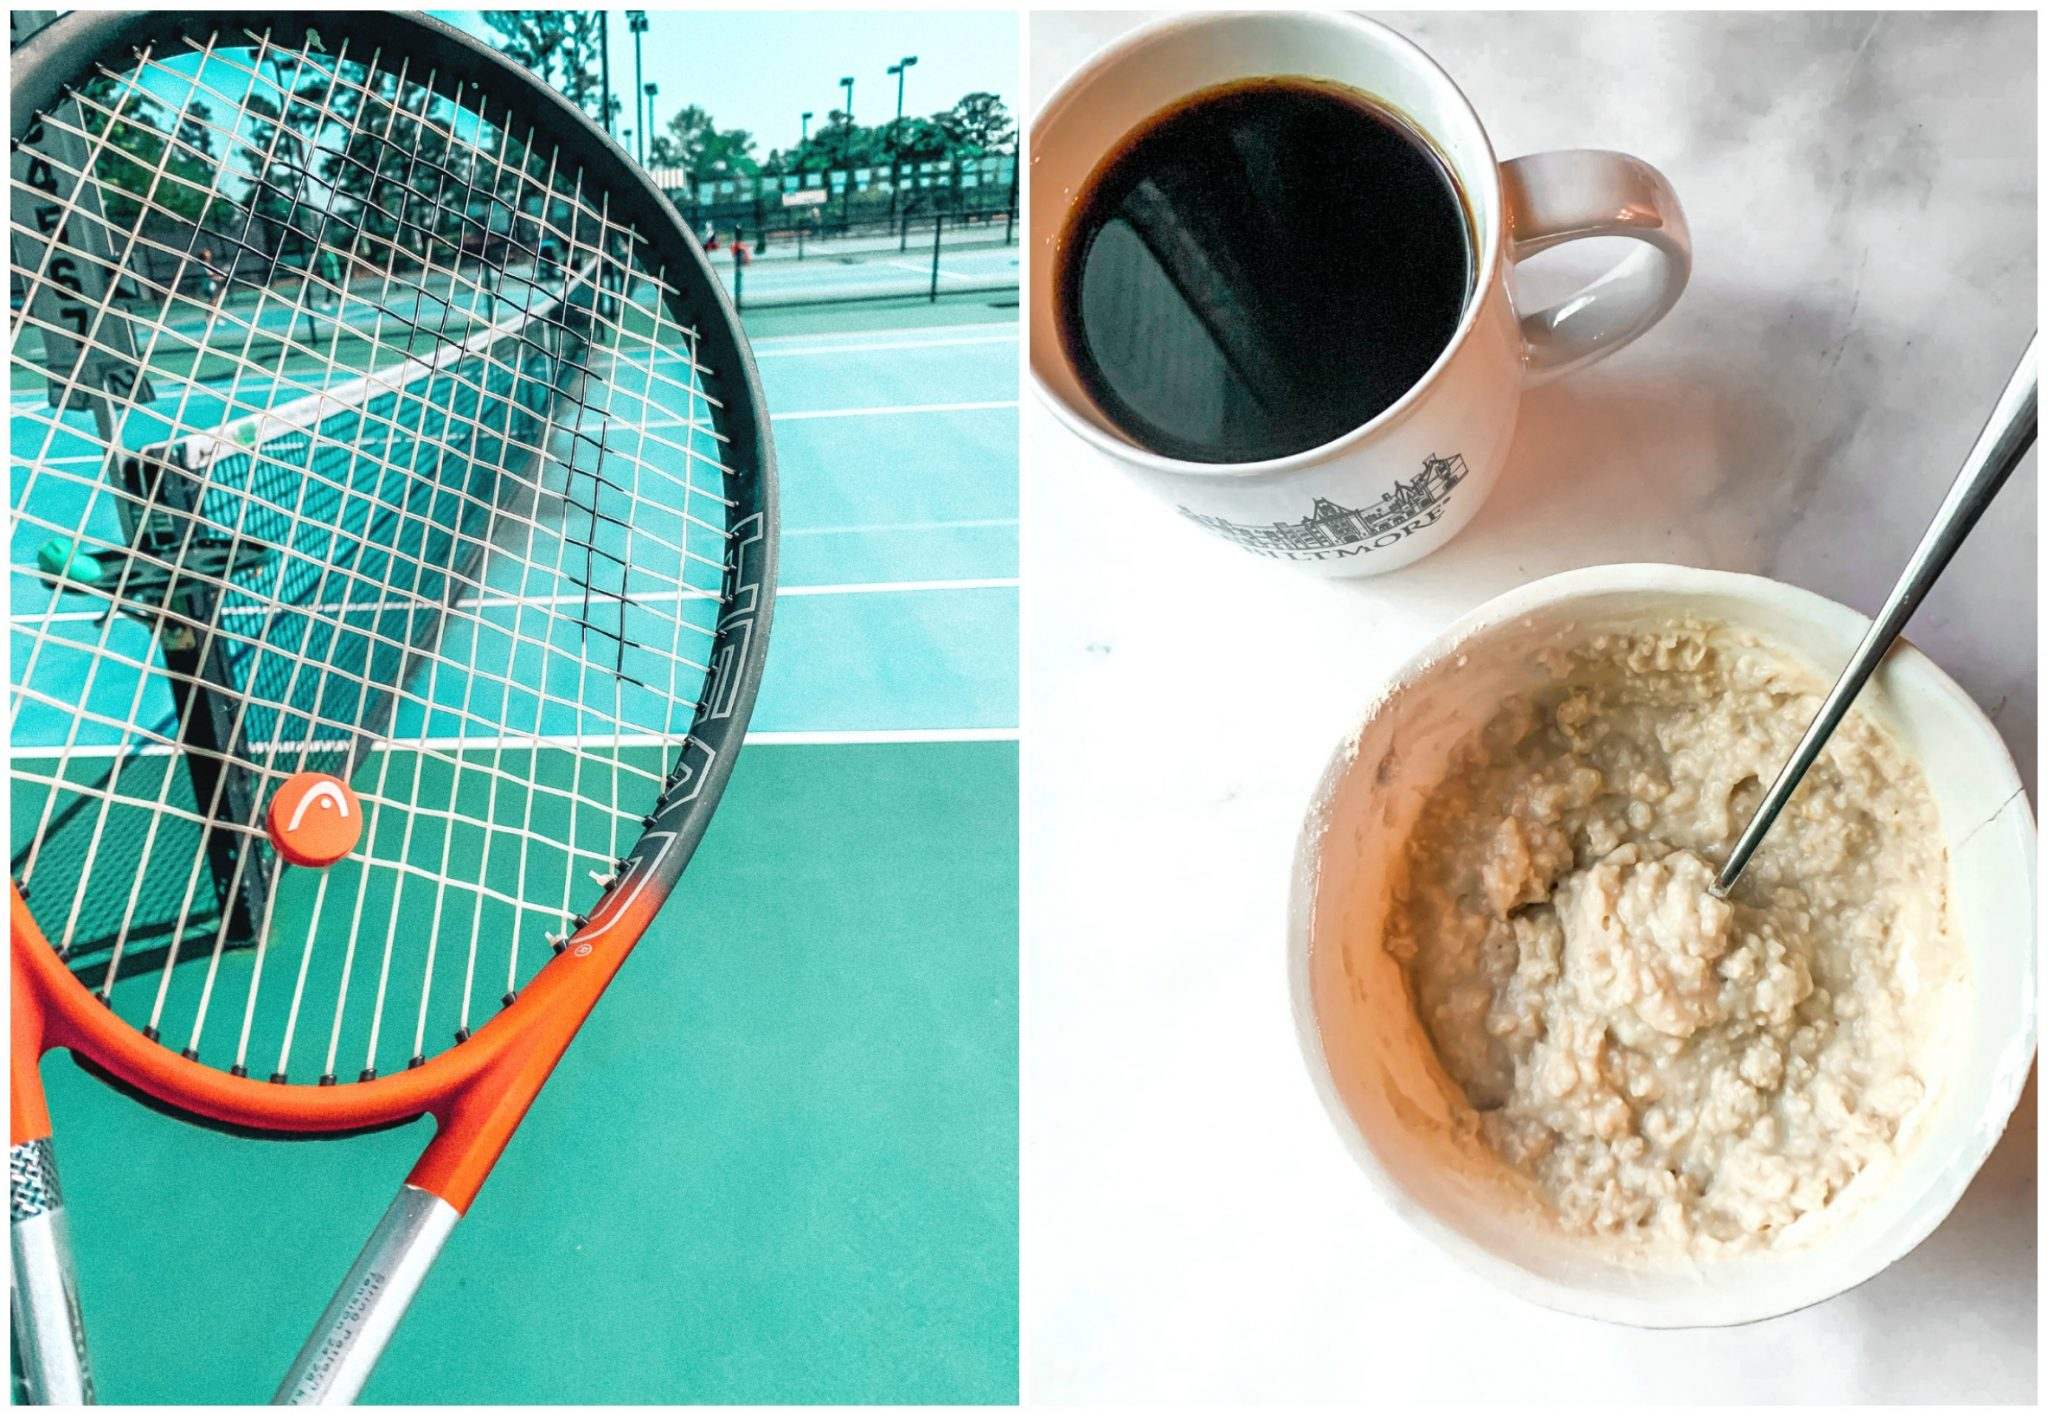 tennis protein oats coffee oatmeal breakfast fitness tennis blogger recap blog simply taralynn